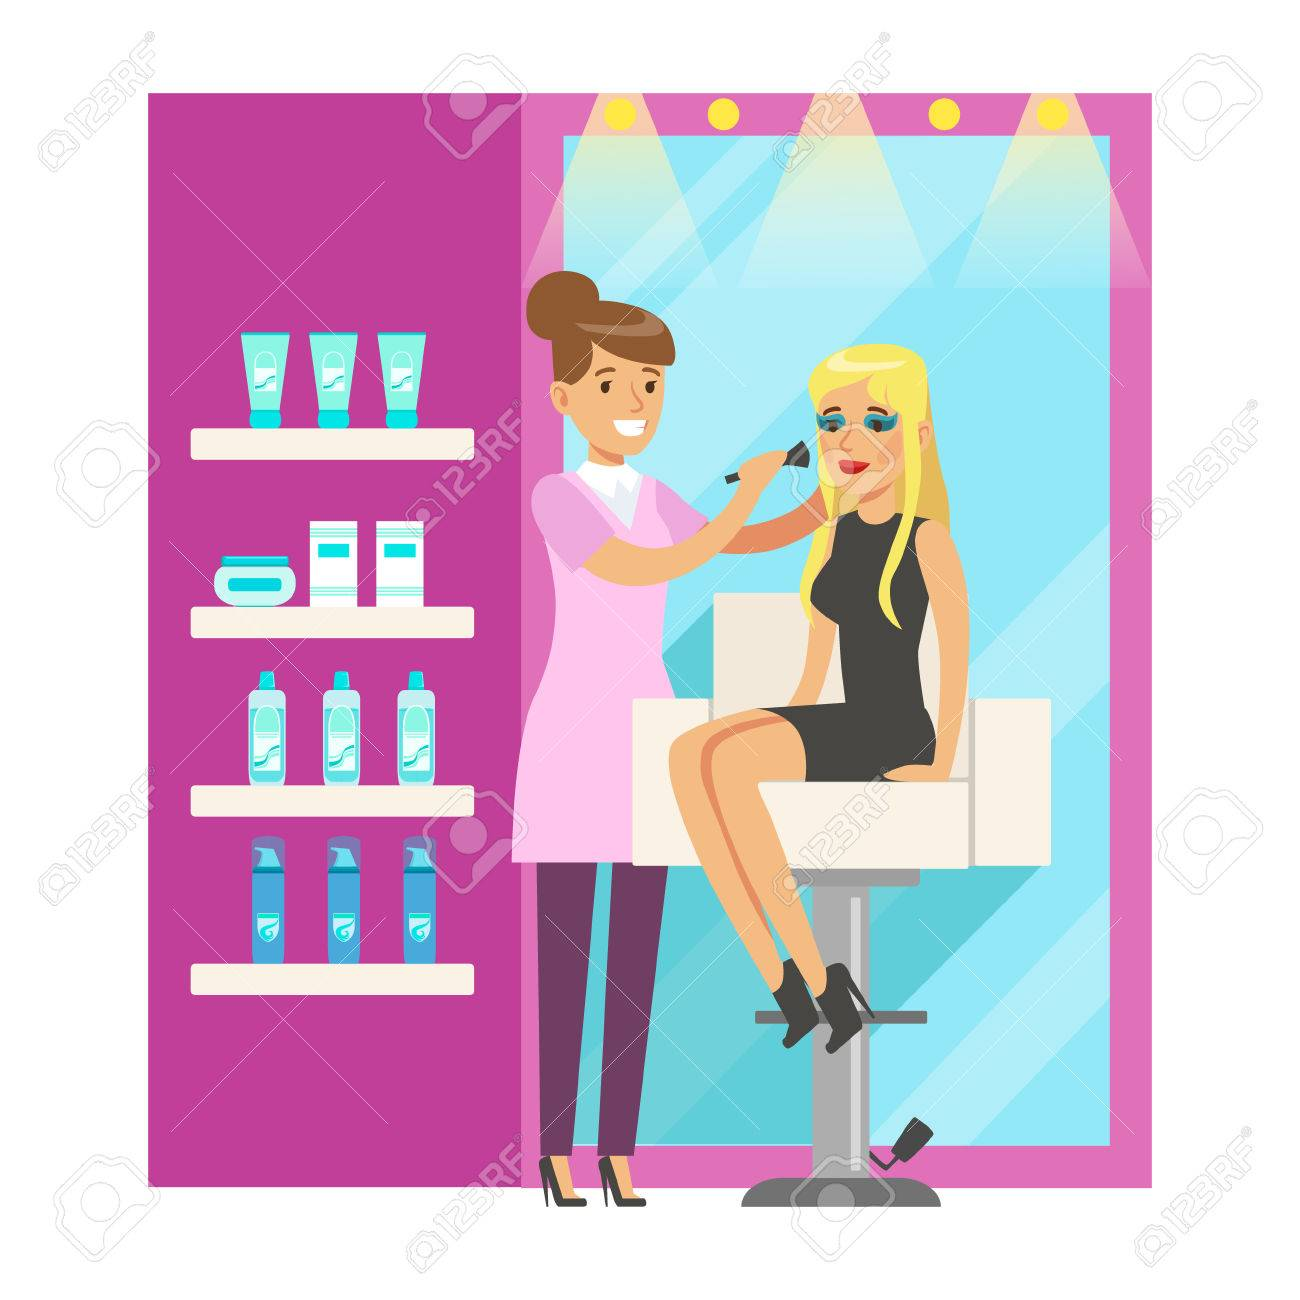 Makeup Artist Applying Makeup On A Beatuful Woman In Beauty Salon Royalty Free Cliparts Vectors And Stock Illustration Image 76831164